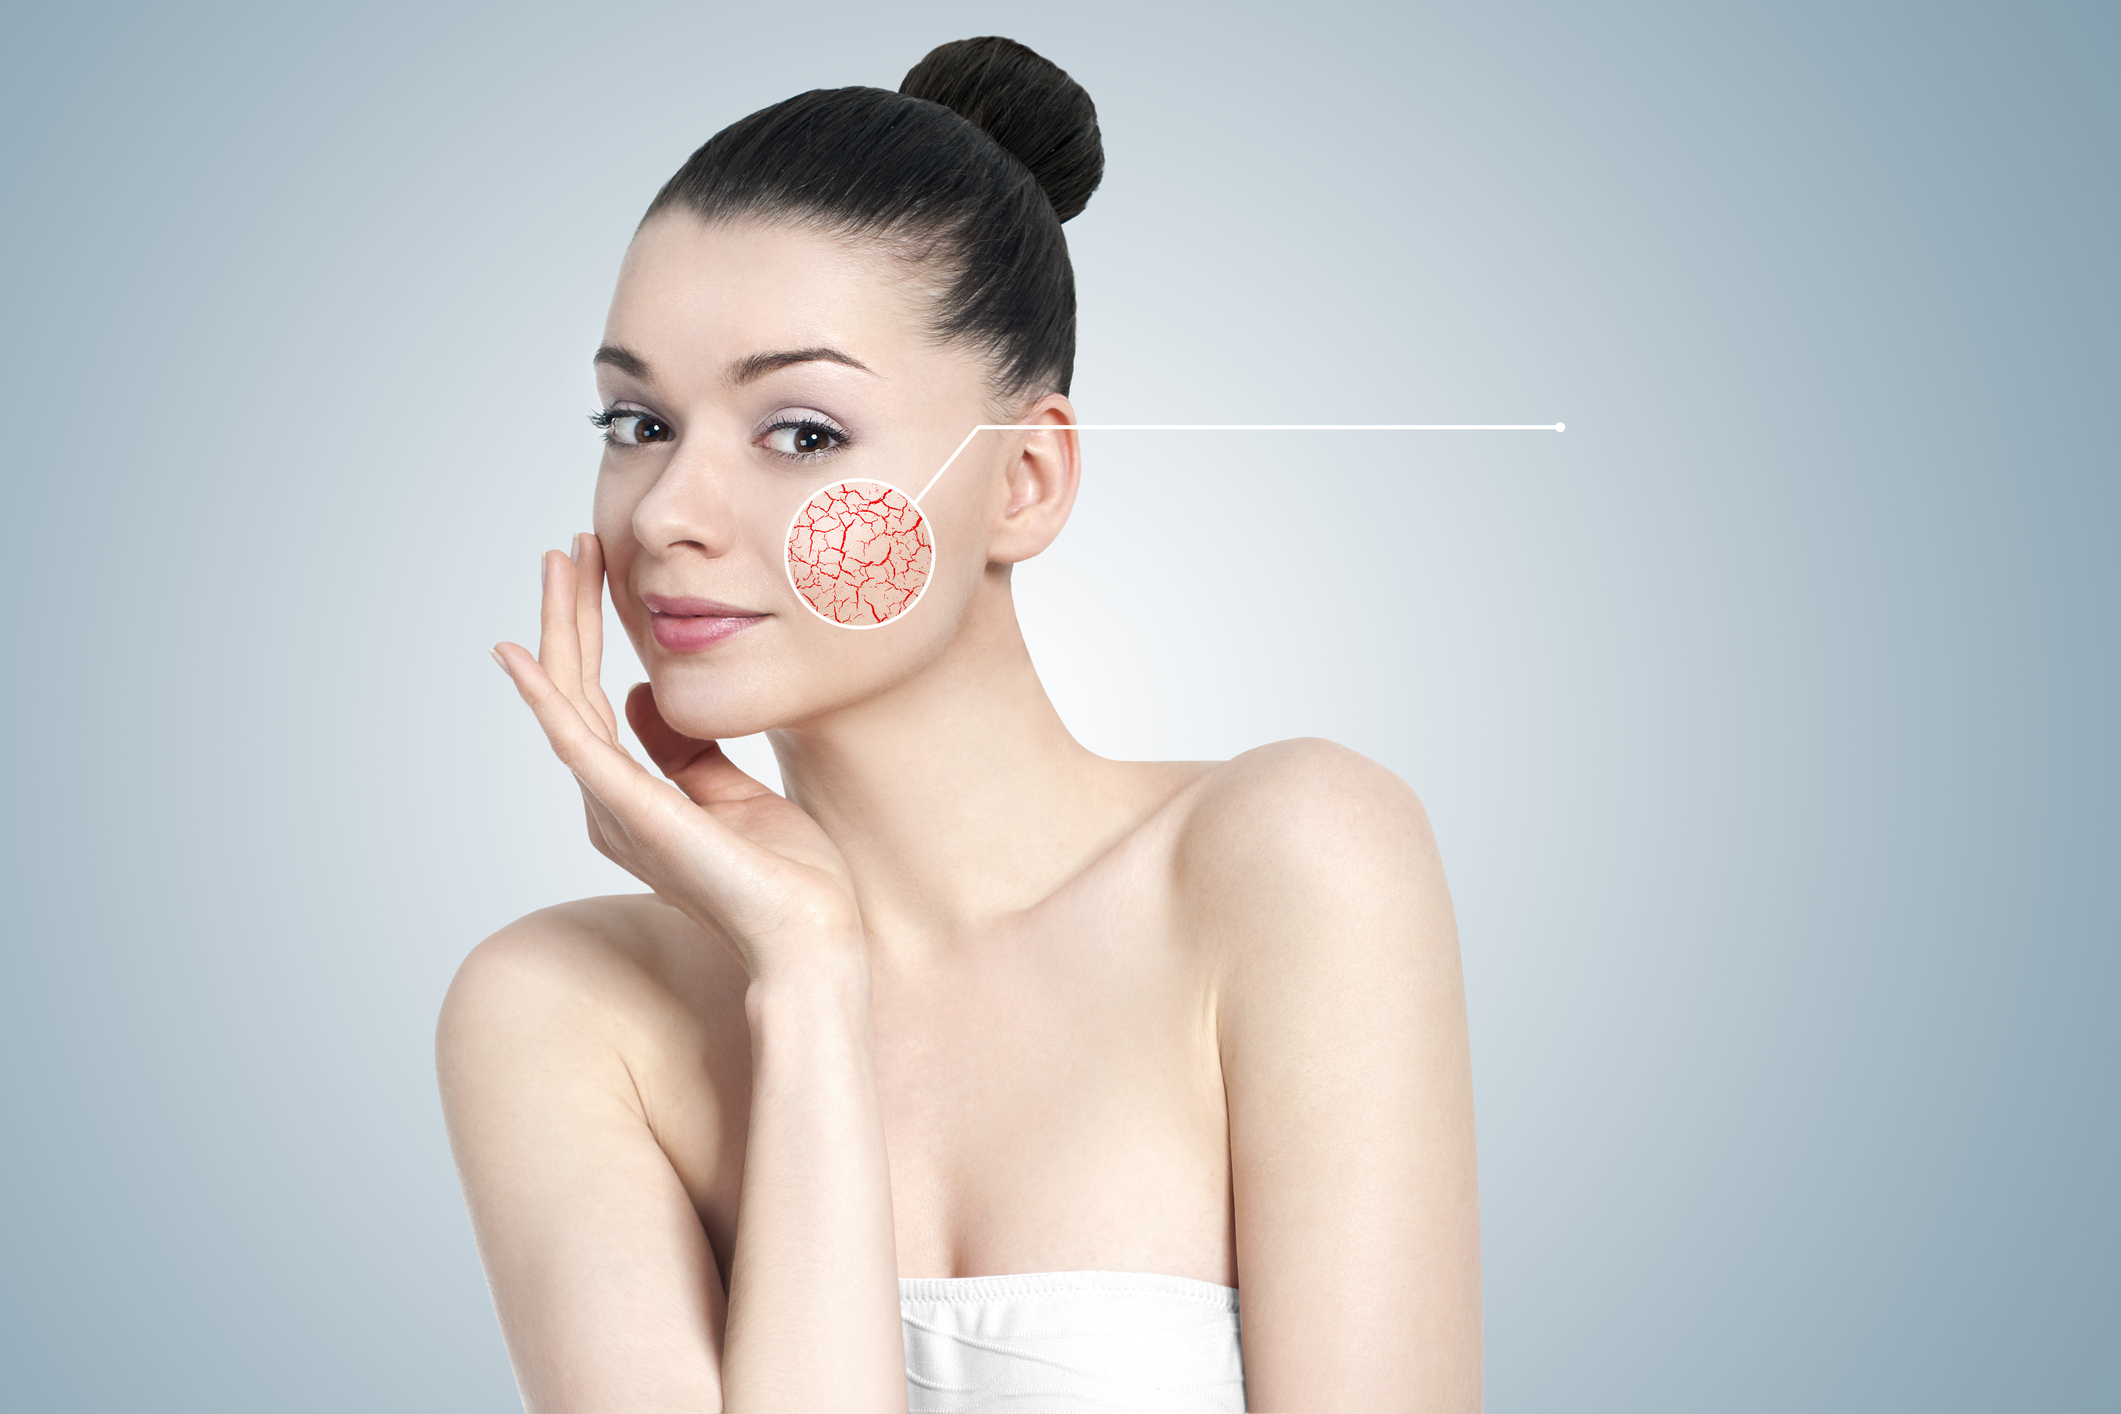 - We offer a wide range of skincare solutions and treatments and can offer individualized treatment programs in a private environment. Each of our clients have individualized needs and concerns and we can tailor a treatment program to fit your goals and lifestyle.